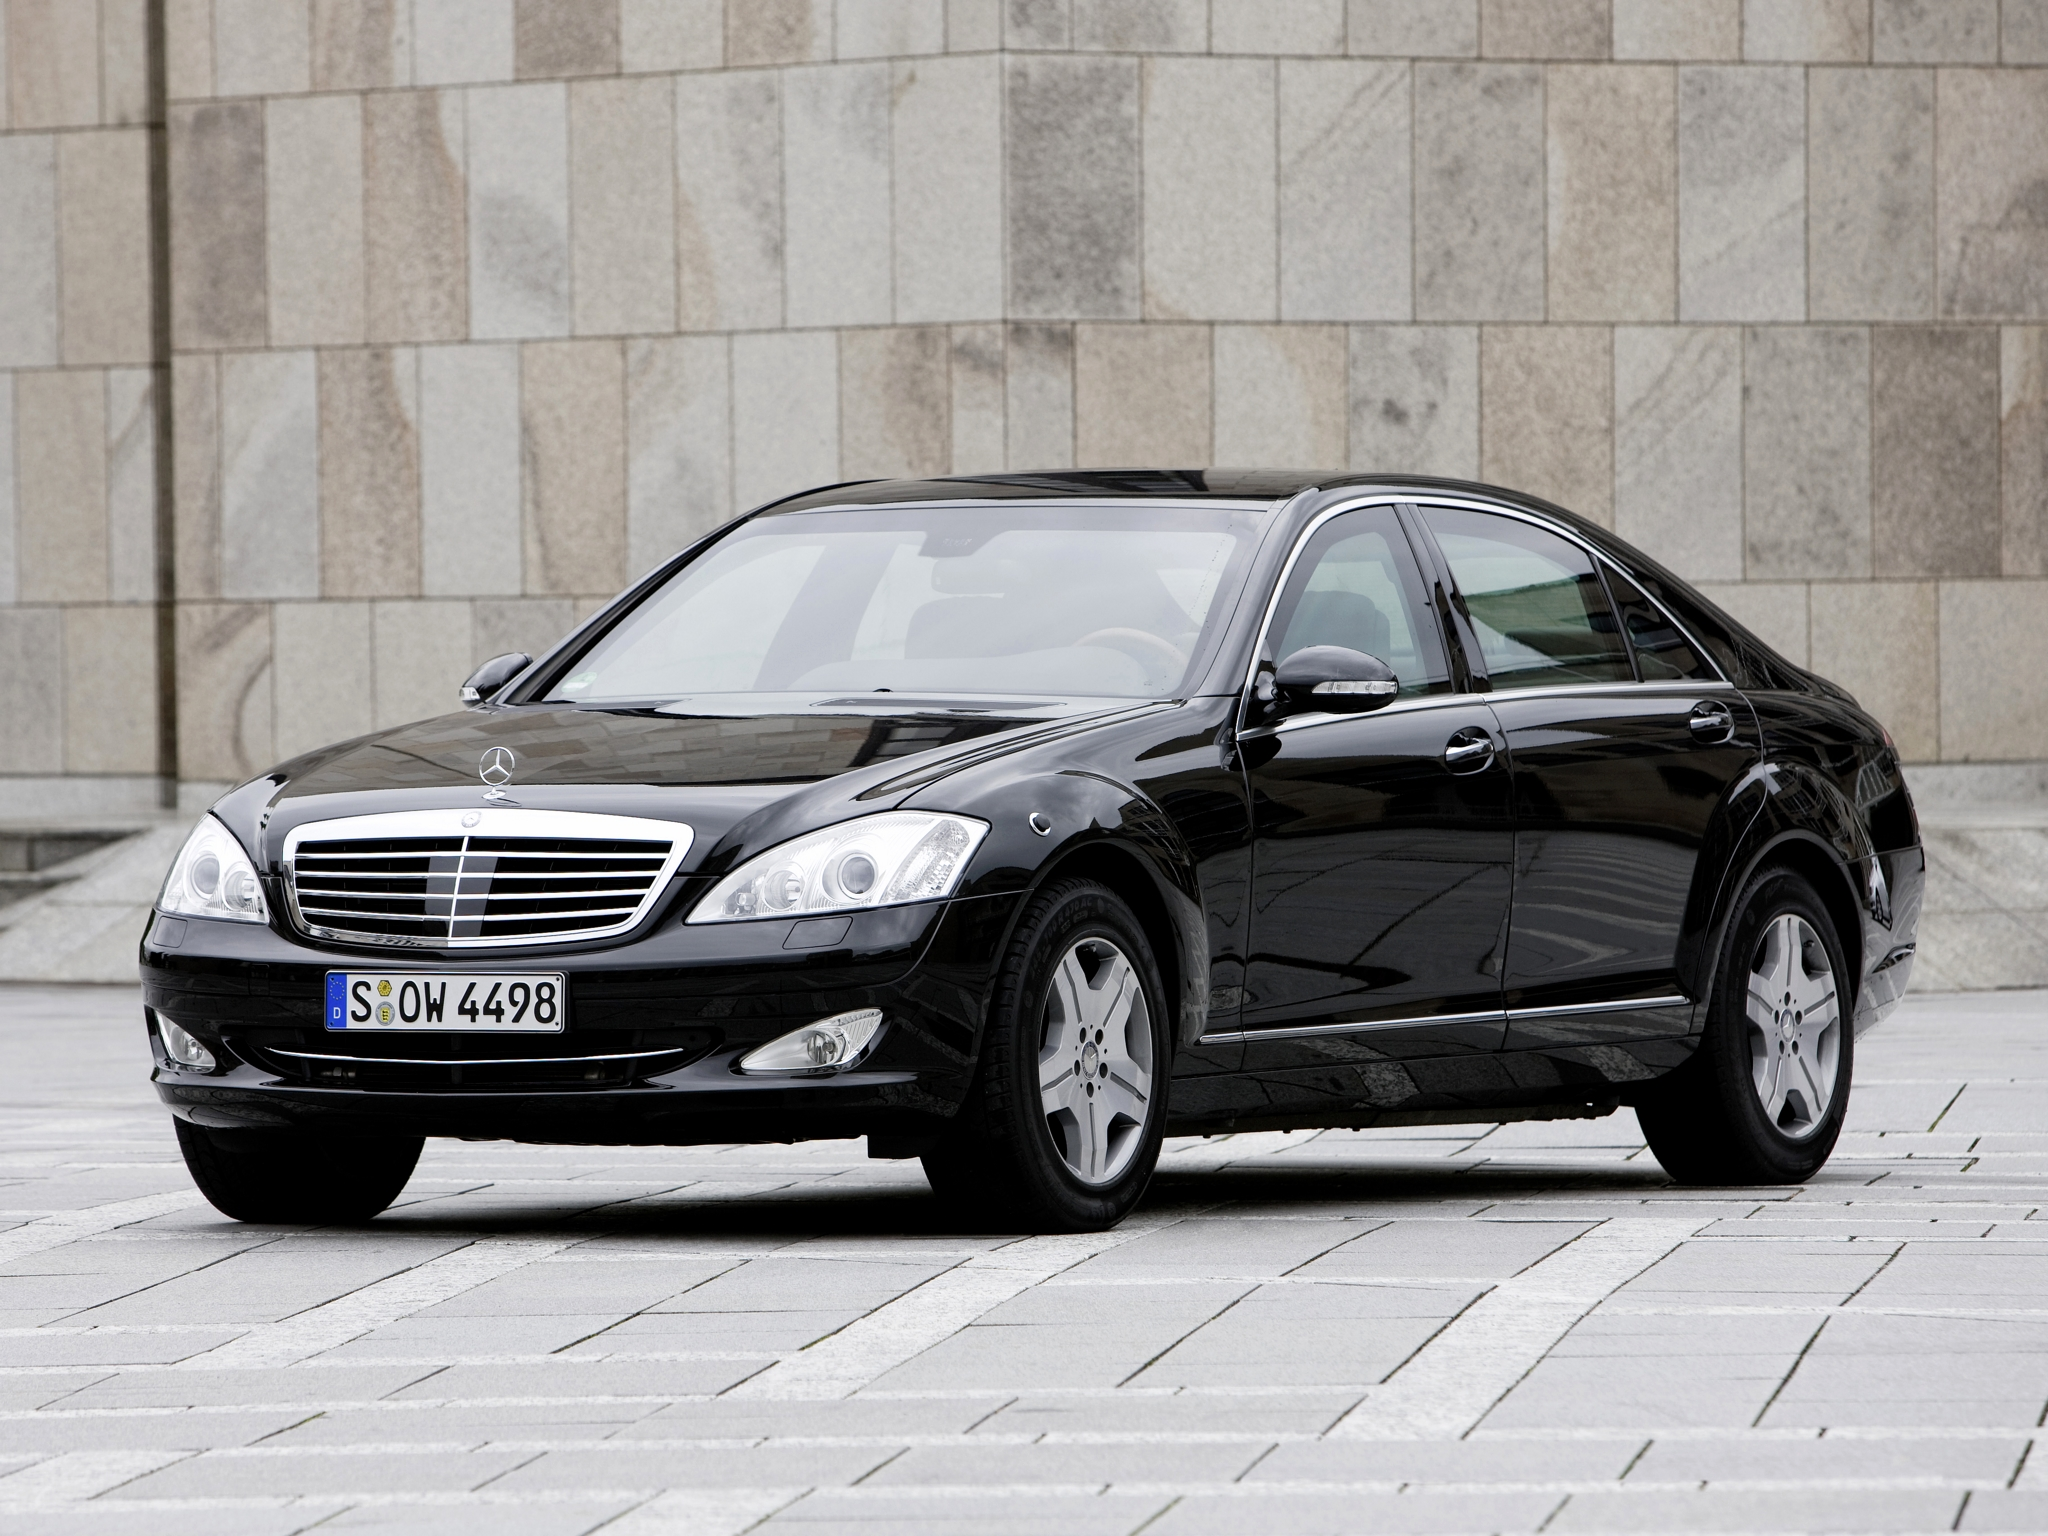 2007 armored mercedes benz s 600 guard w221 luxury for Mercedes benz armored